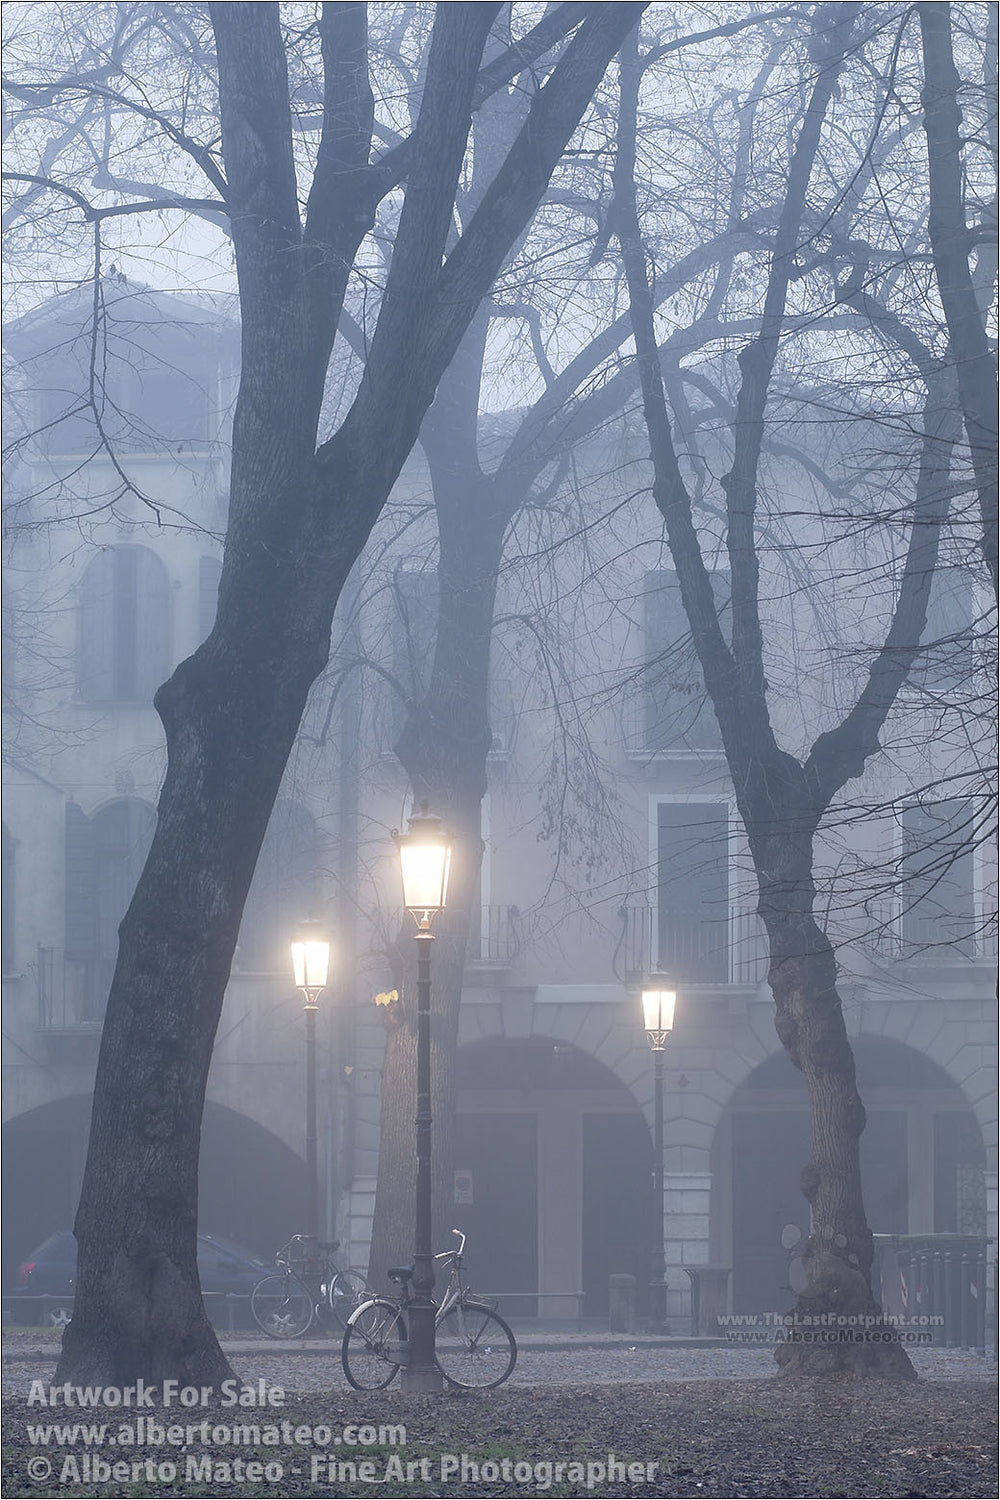 Fog in Piazza del Castello, Padua, Italy. | Full view of the Print.